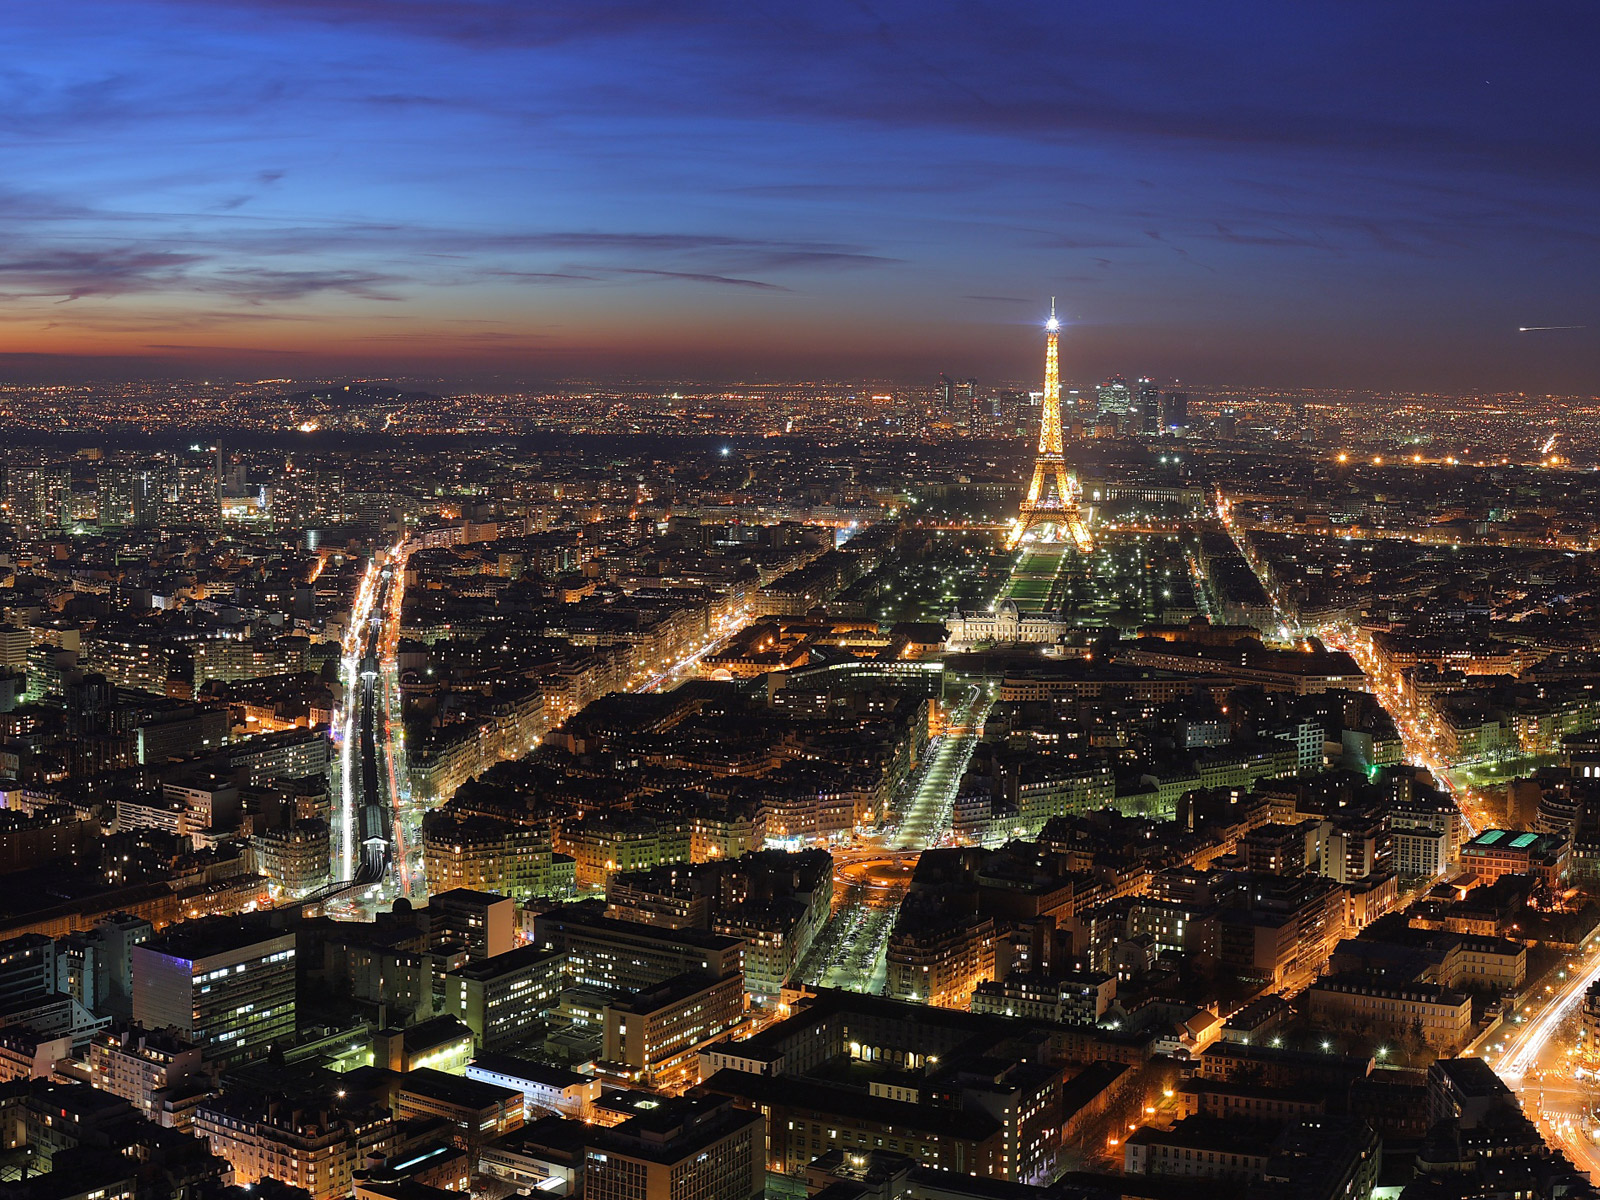 paris_night-light-view.jpg (1600×1200)